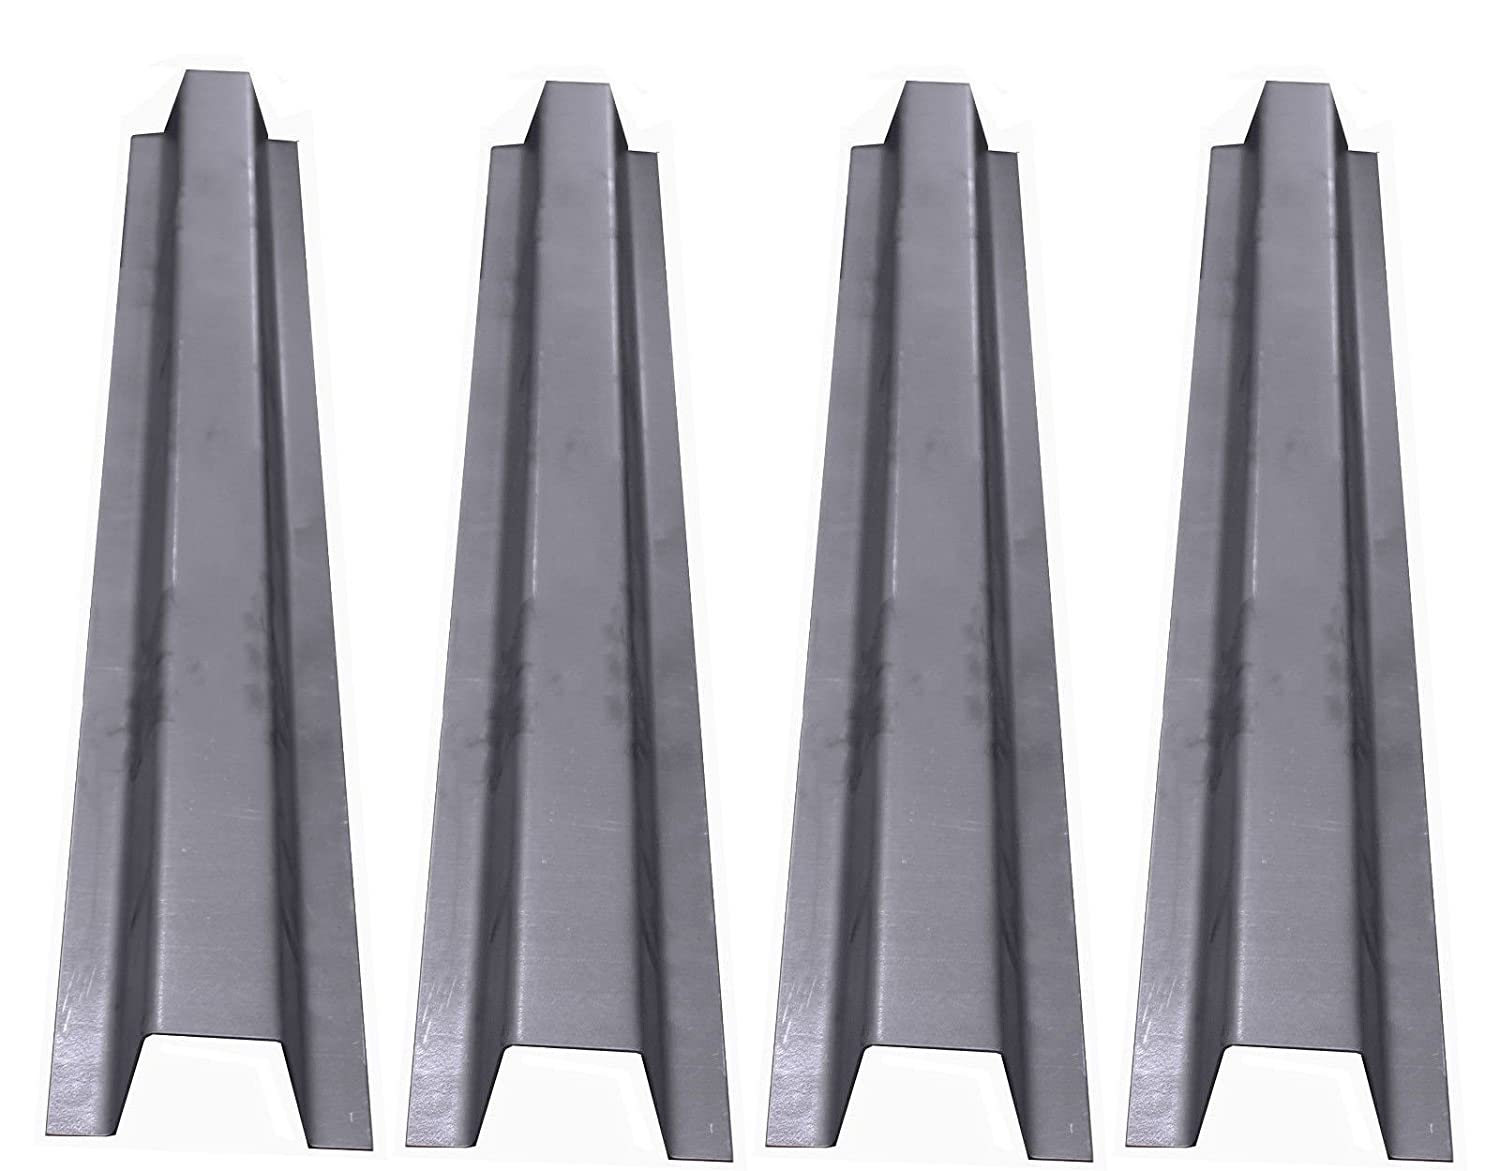 Motor City Sheet Metal - Works With 97-2010 Ford Pickup Truck Front Bed Brace Support F150 F250 F350 F450 (Set of 4)